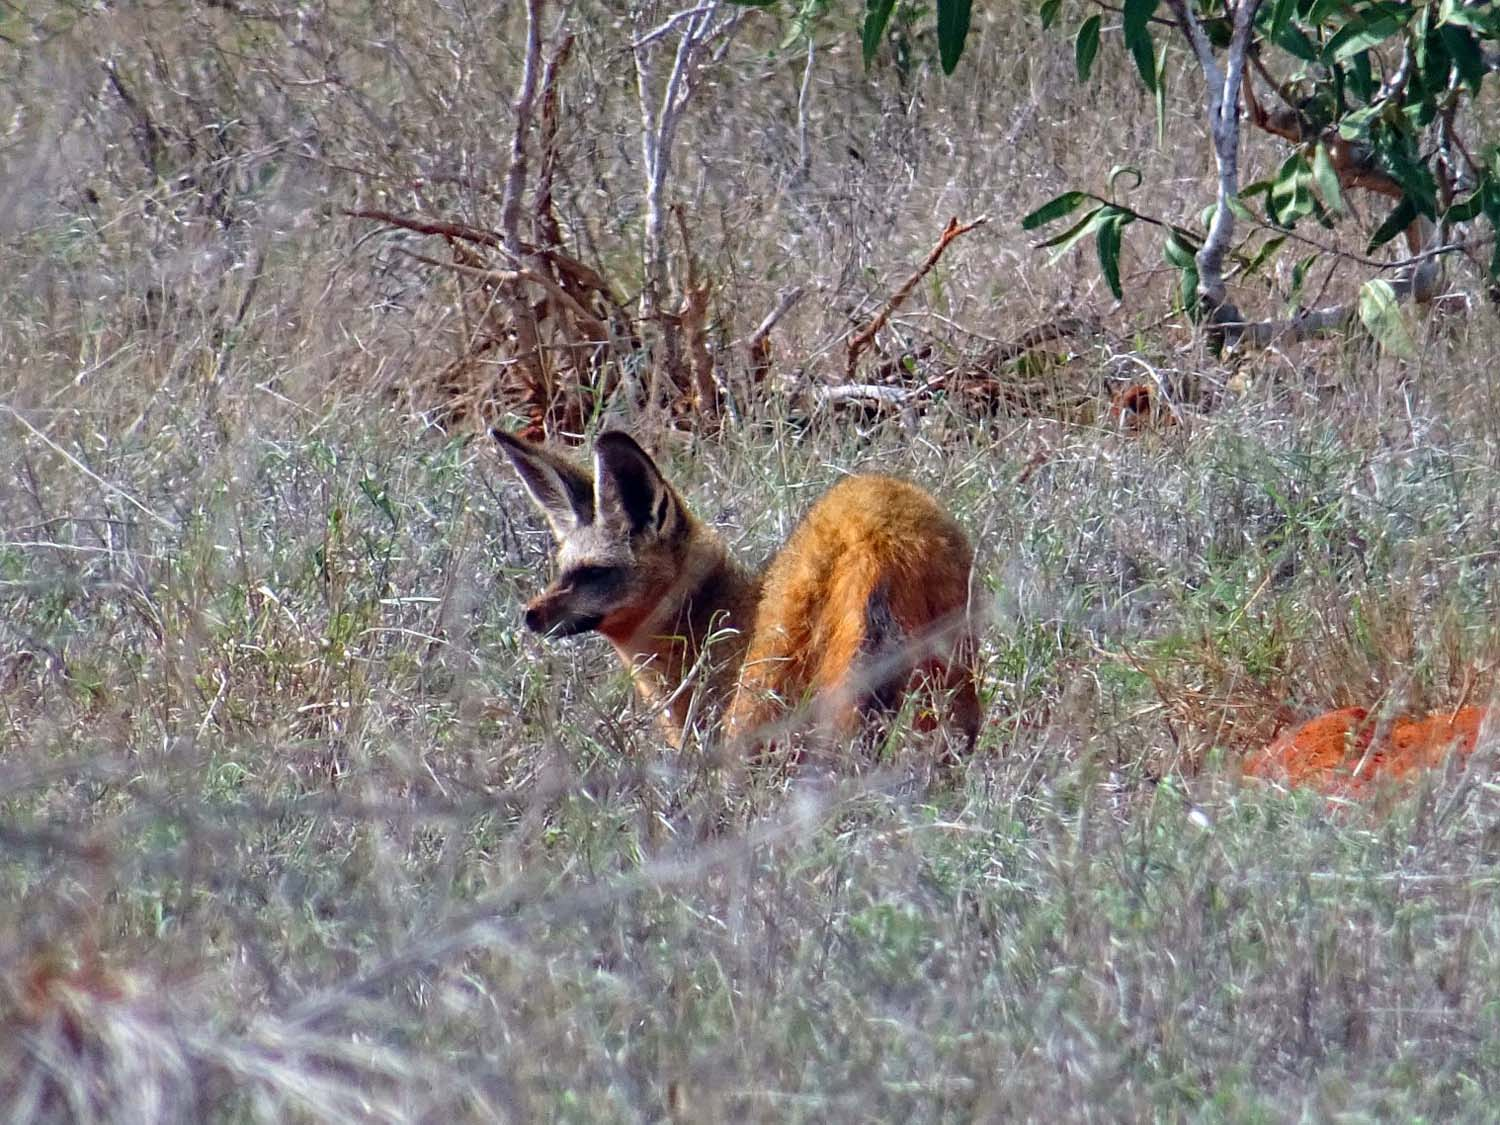 the bat-eared fox uses his huge ears to detect insects at night when it feeds, for example dung beetles and harvester ants. It also has the largest number of teeth of any African land mammal (45-50) (Tsavo East)